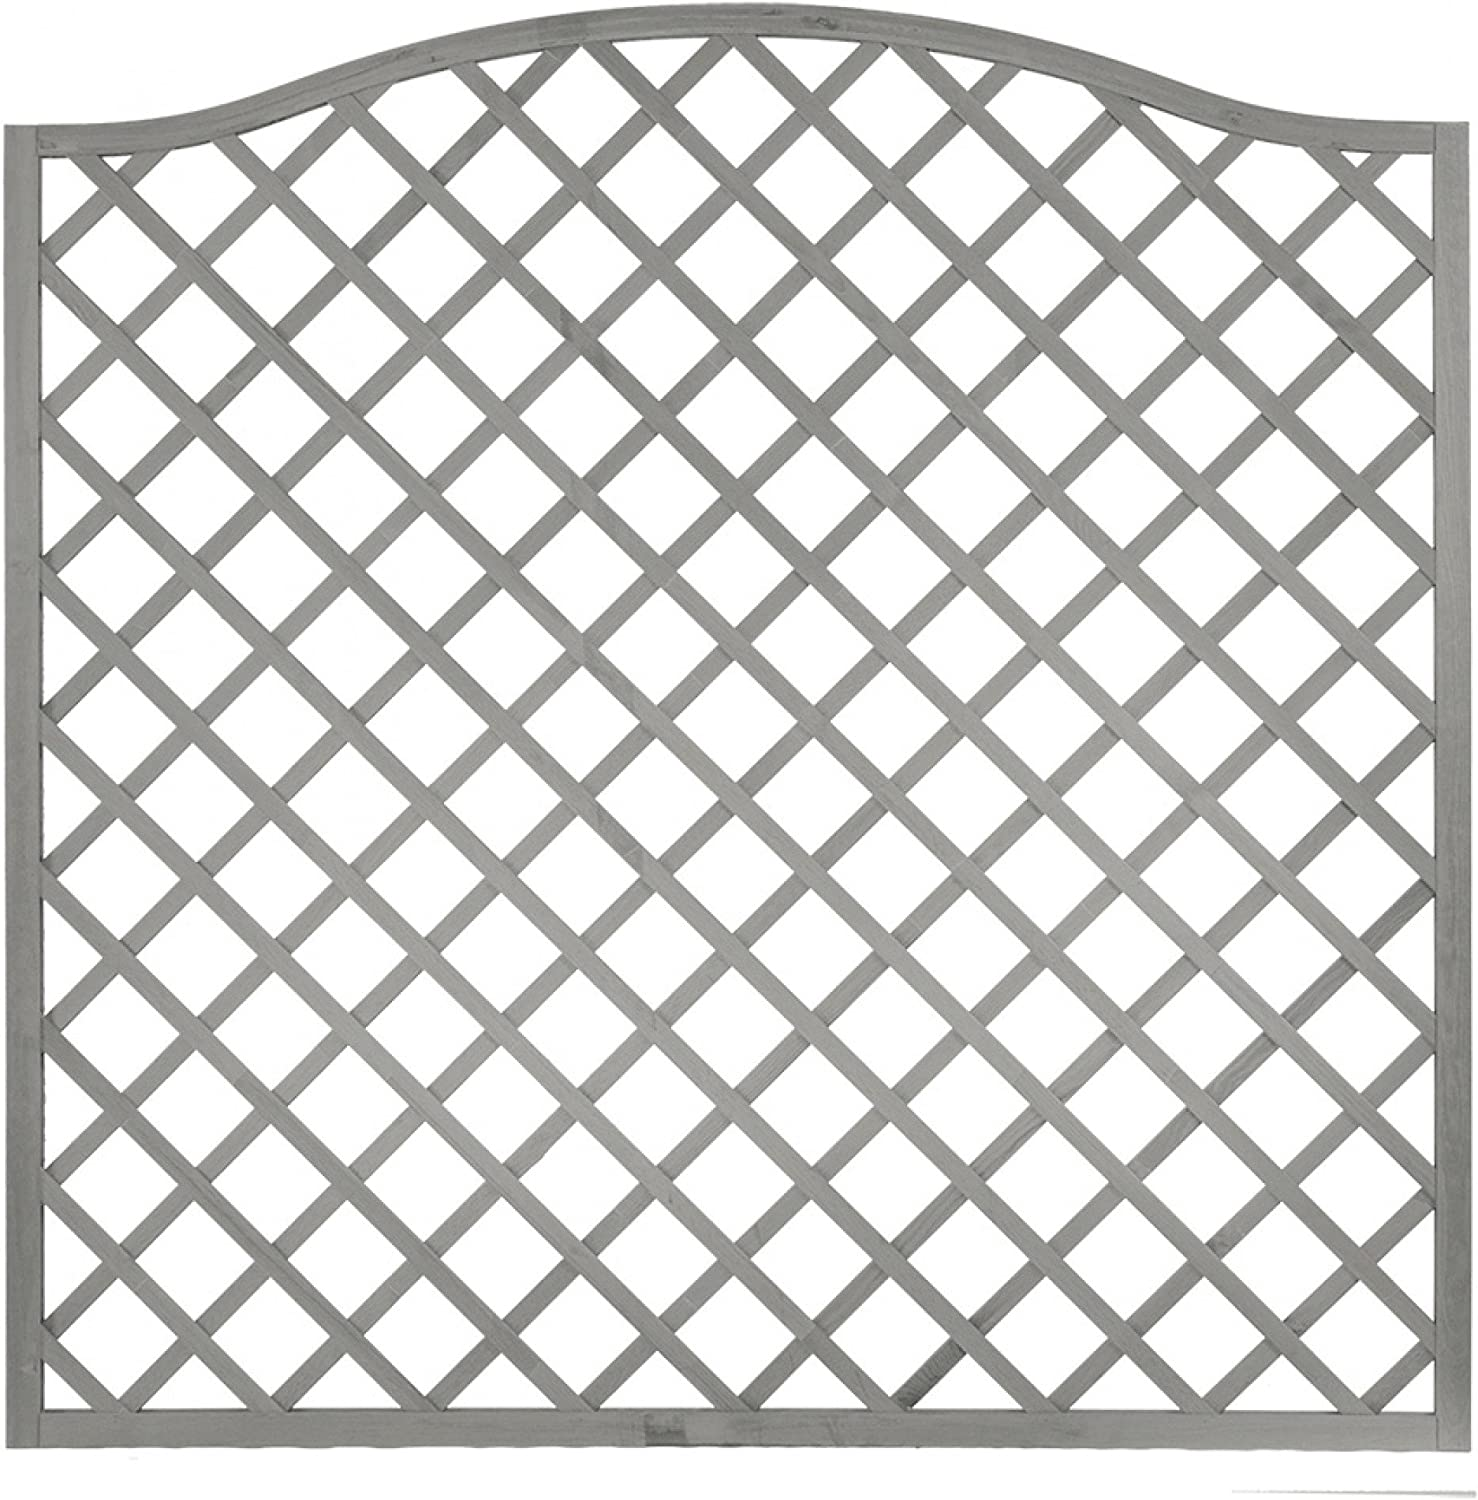 Andrewex wooden fence, fencing panel, garden fence 164 180 x 180, varnished, grey